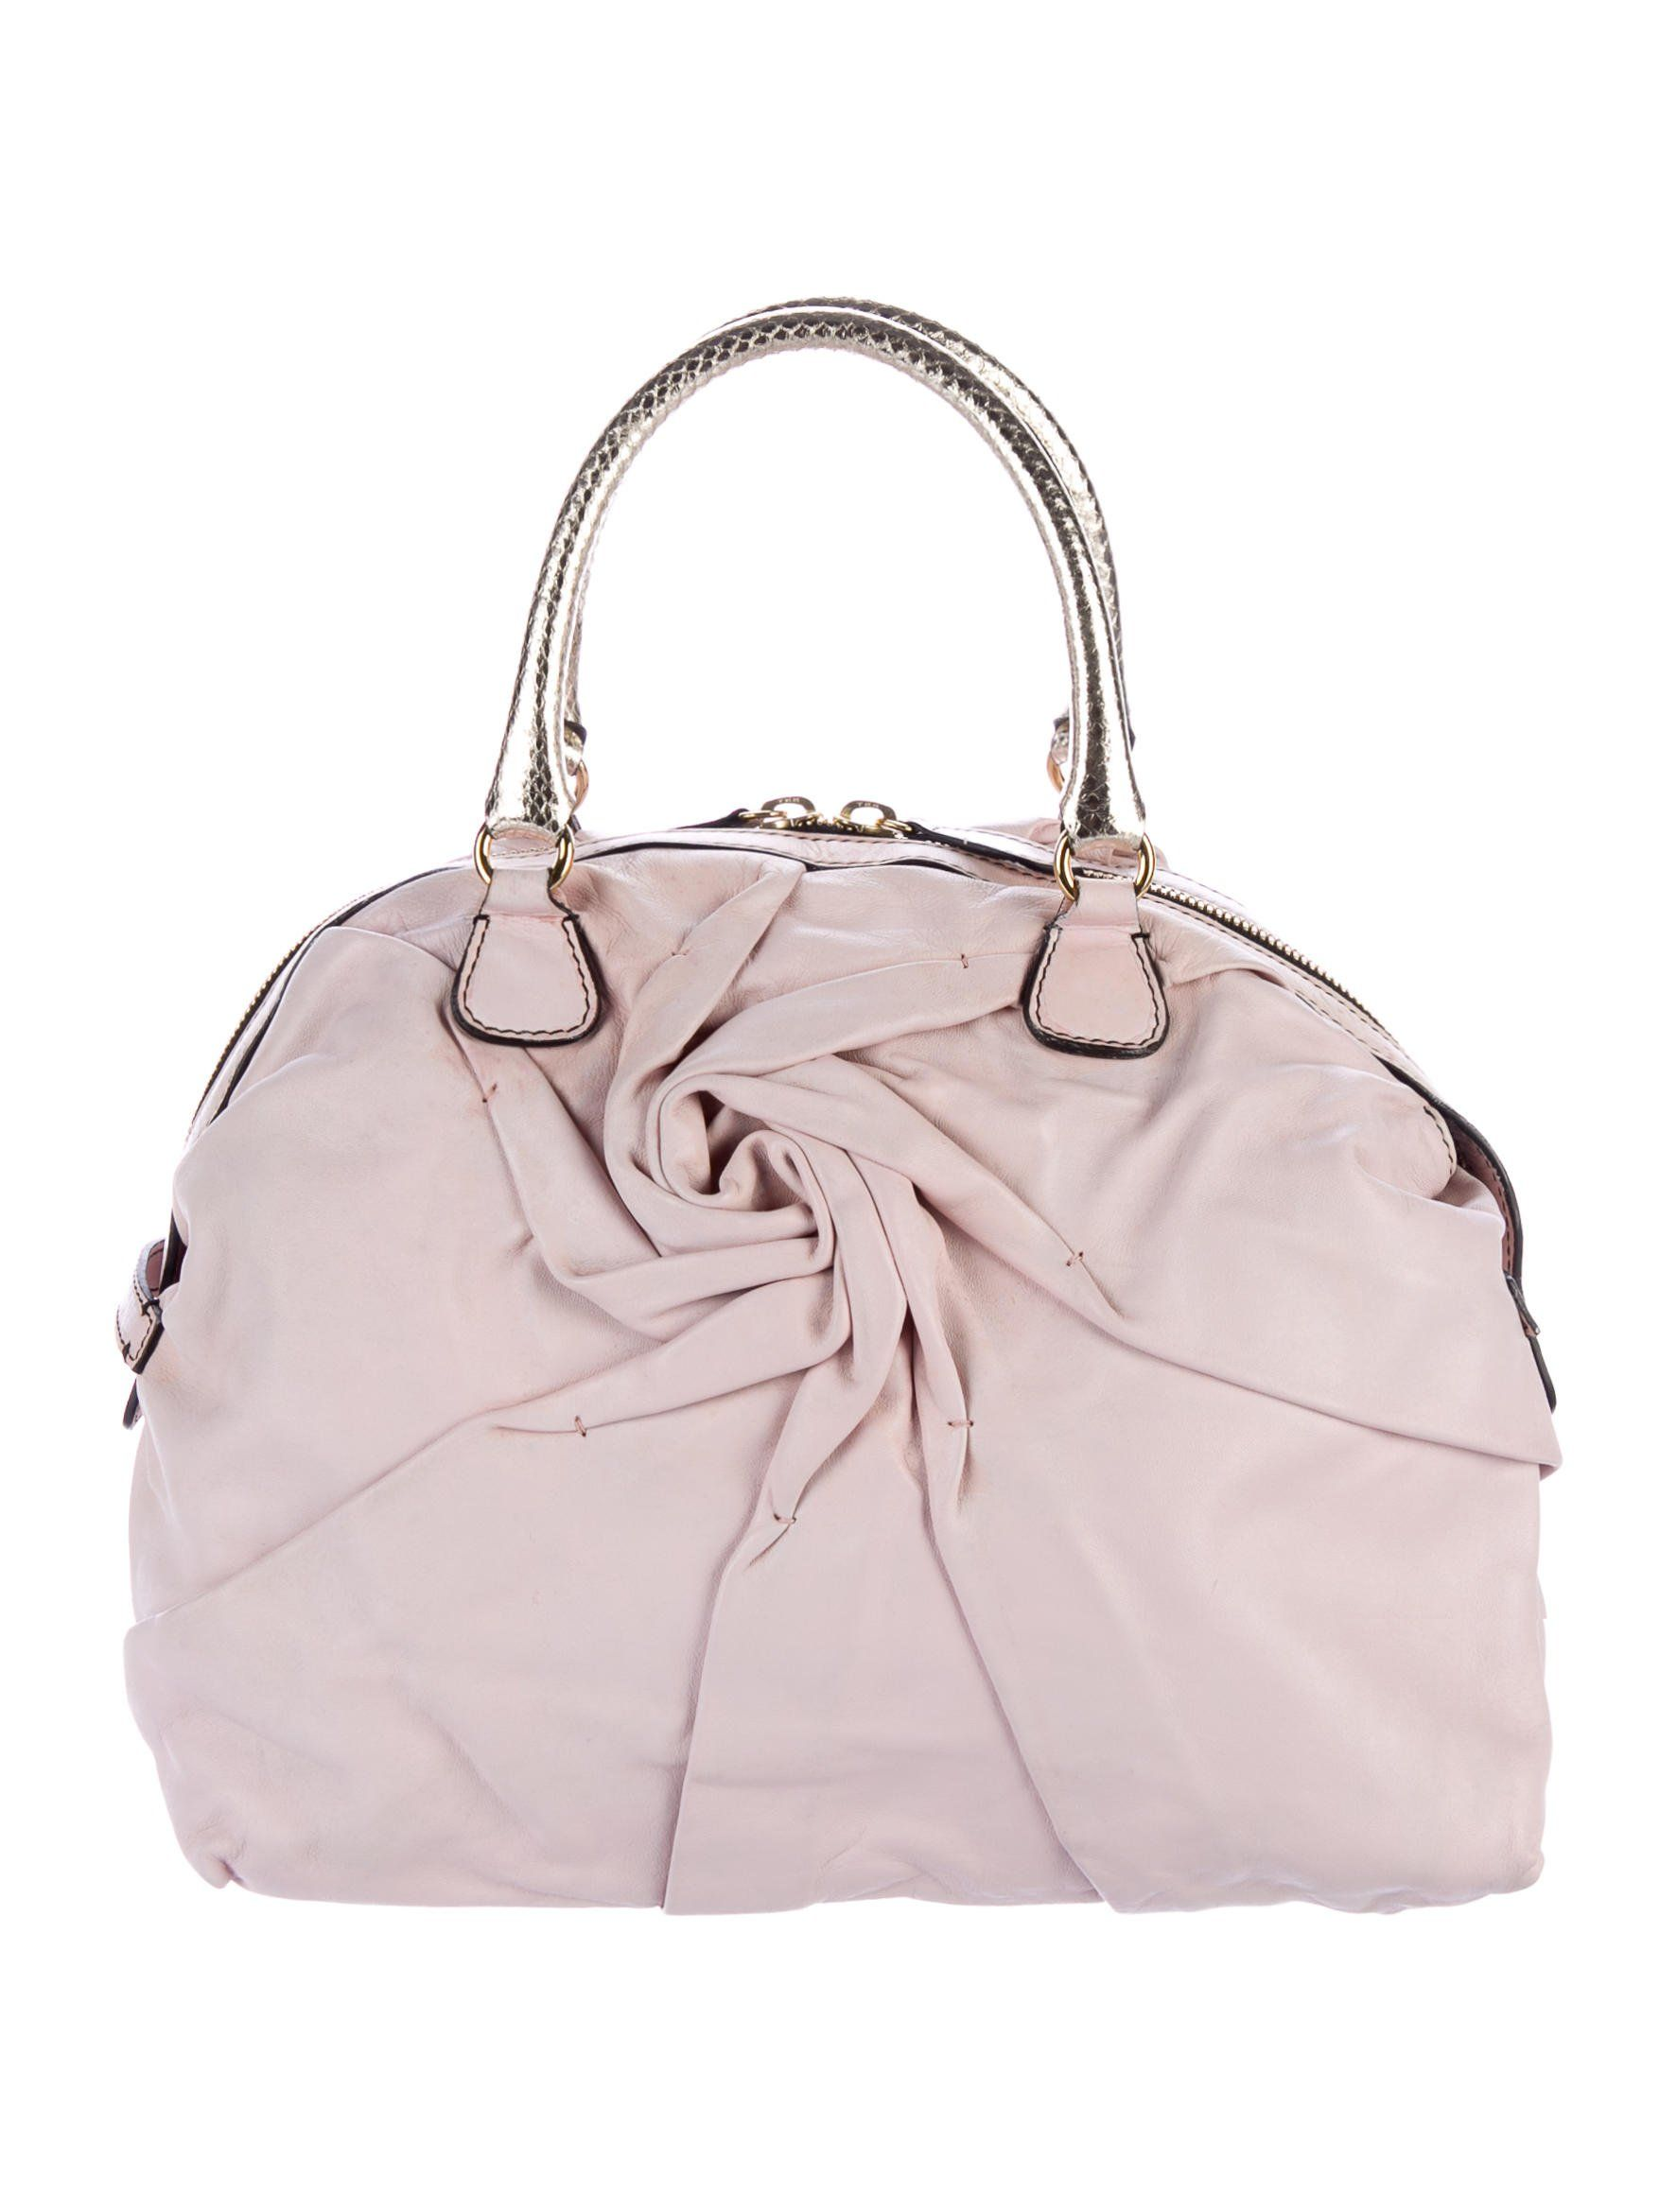 75ac7b6c2a5 Snakeskin-Trimmed Dome Tote in 2019 | Borse fashion | Bags, Snake ...